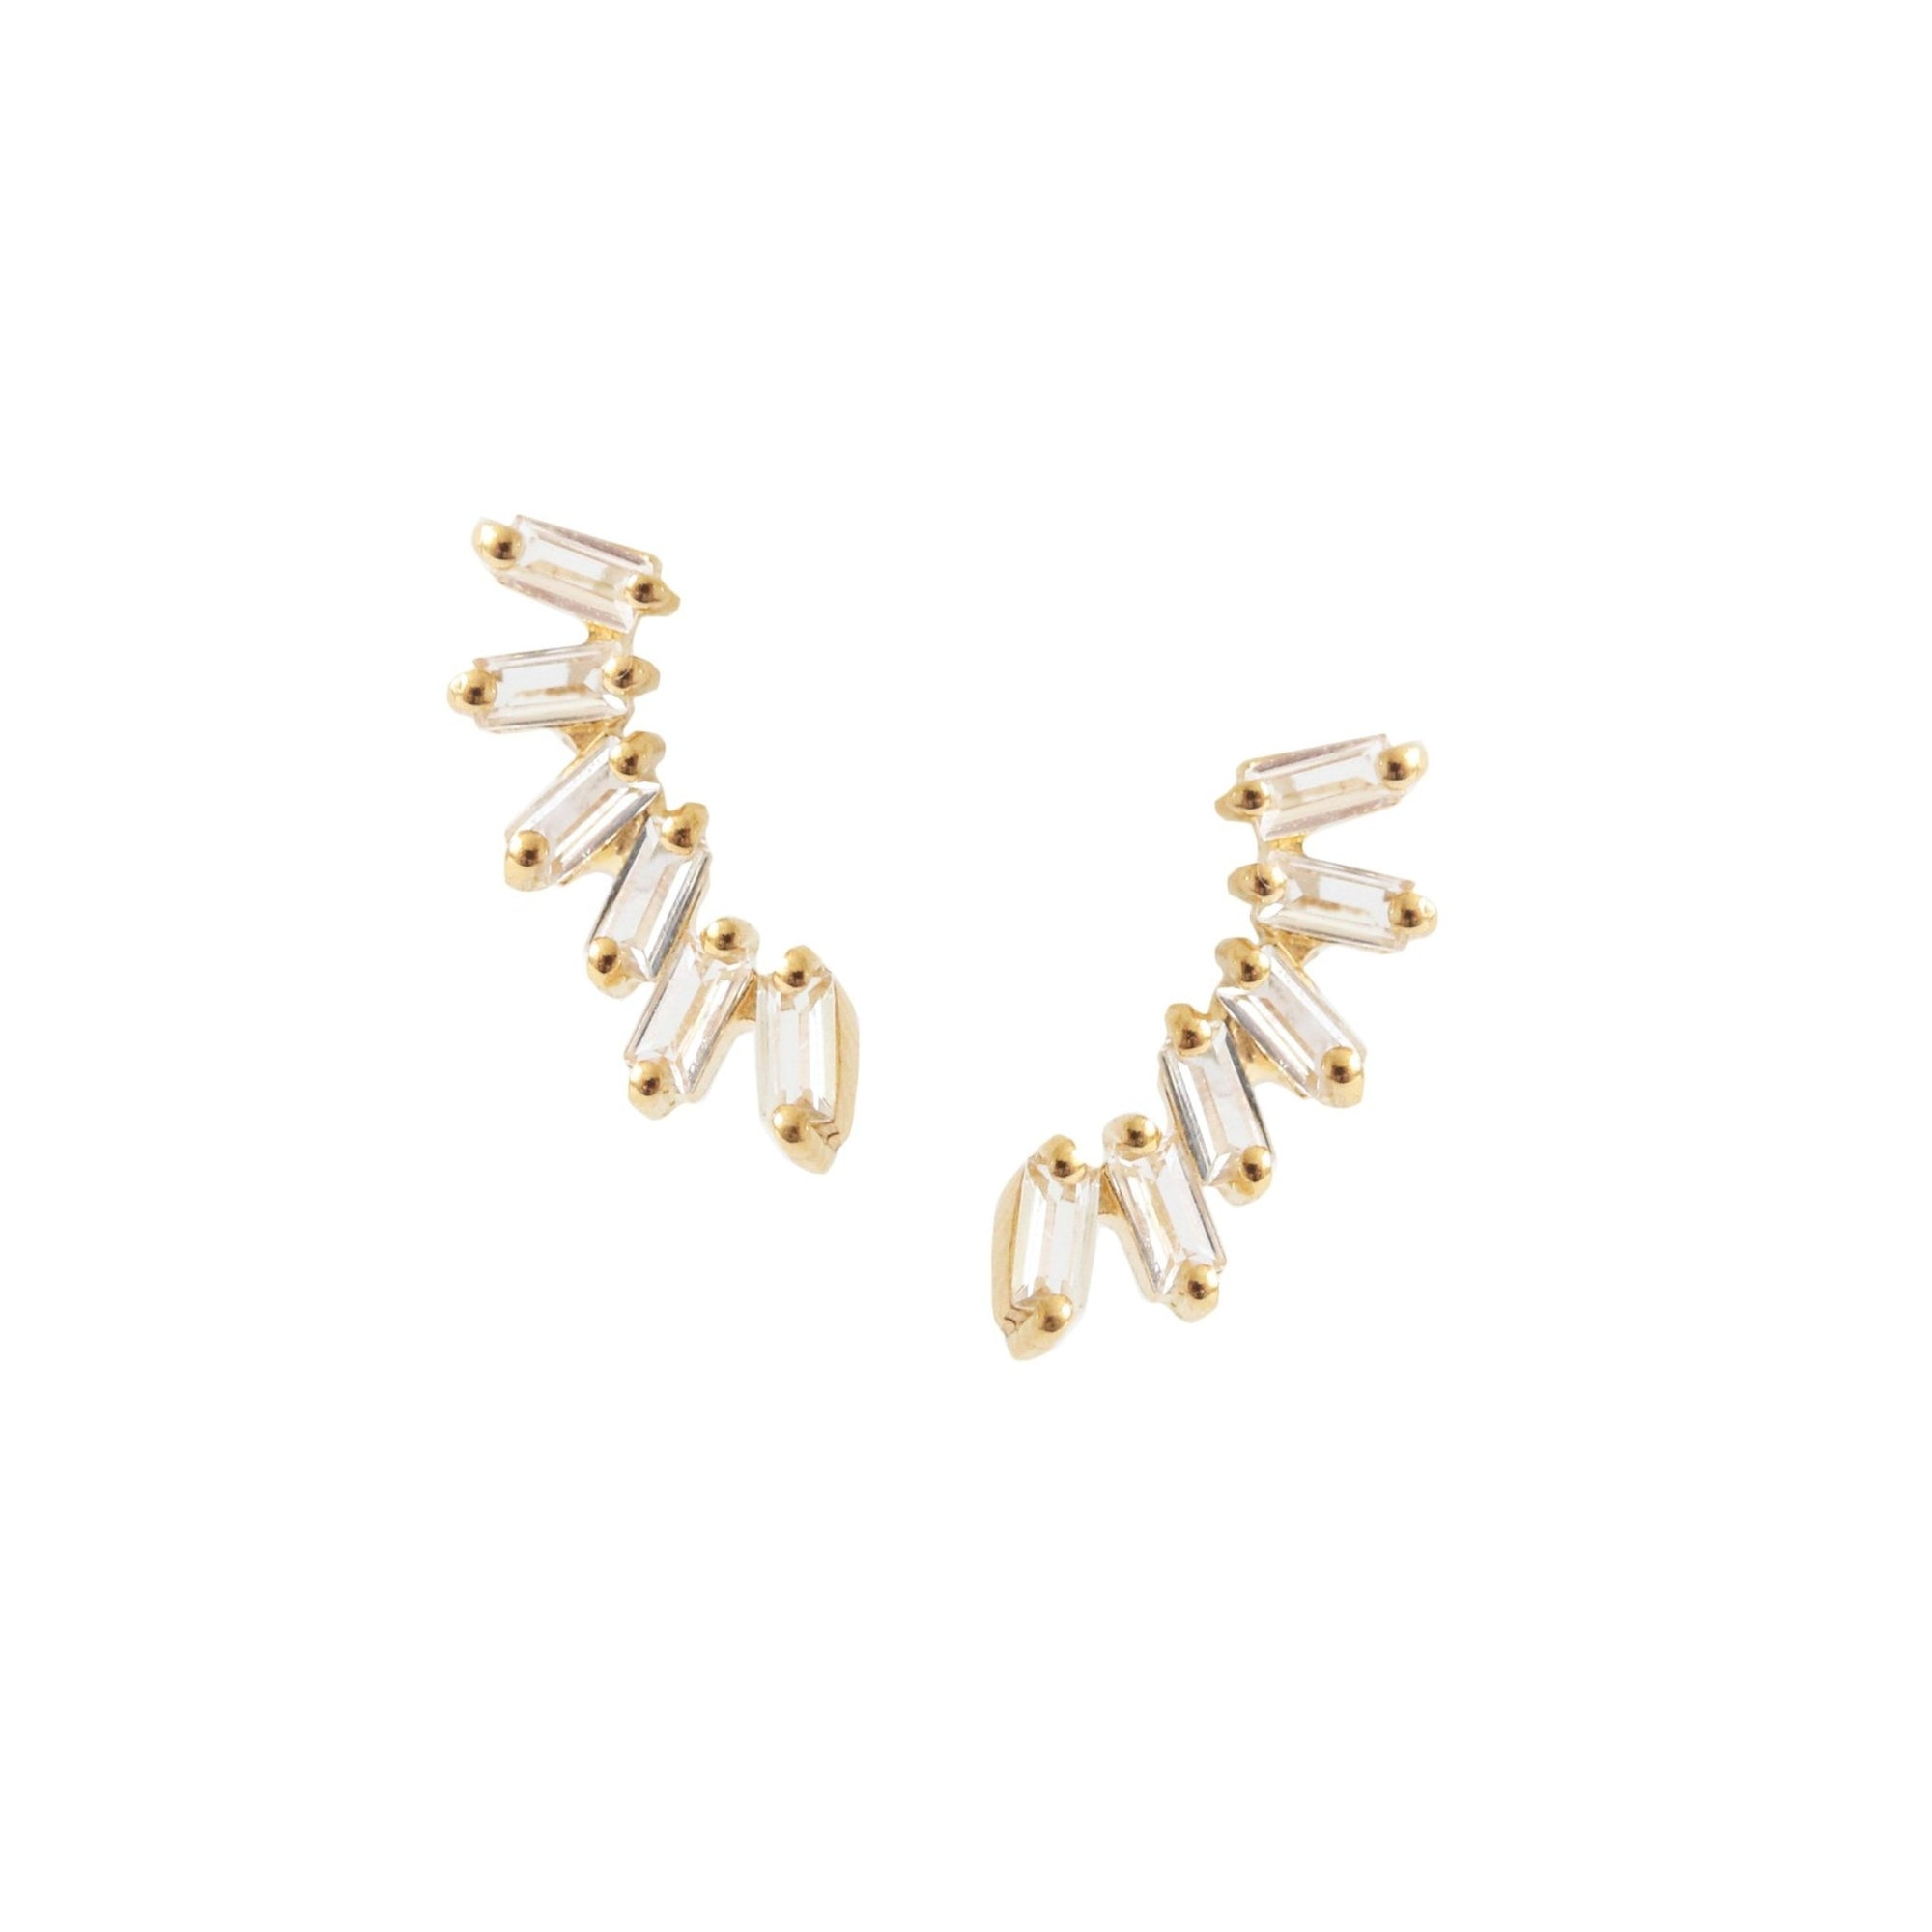 Dainty Loyal Ear Climbers - White Topaz & Gold - SO PRETTY CARA COTTER